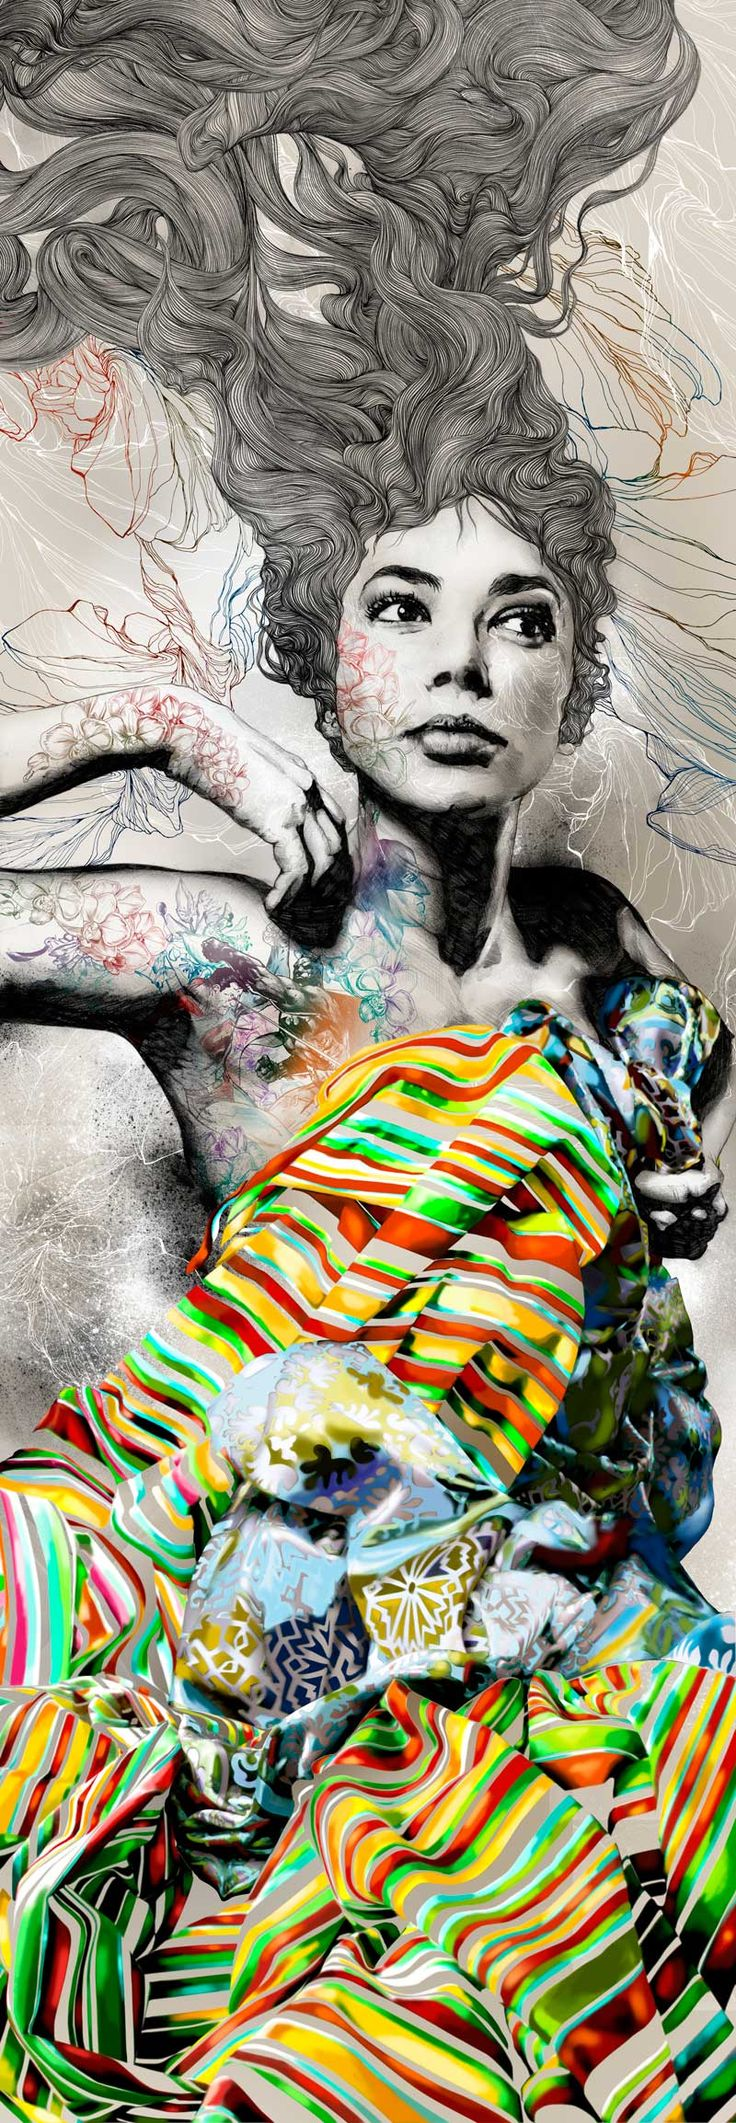 .Toya's Tales Art of the Day - Gabriel Moreno